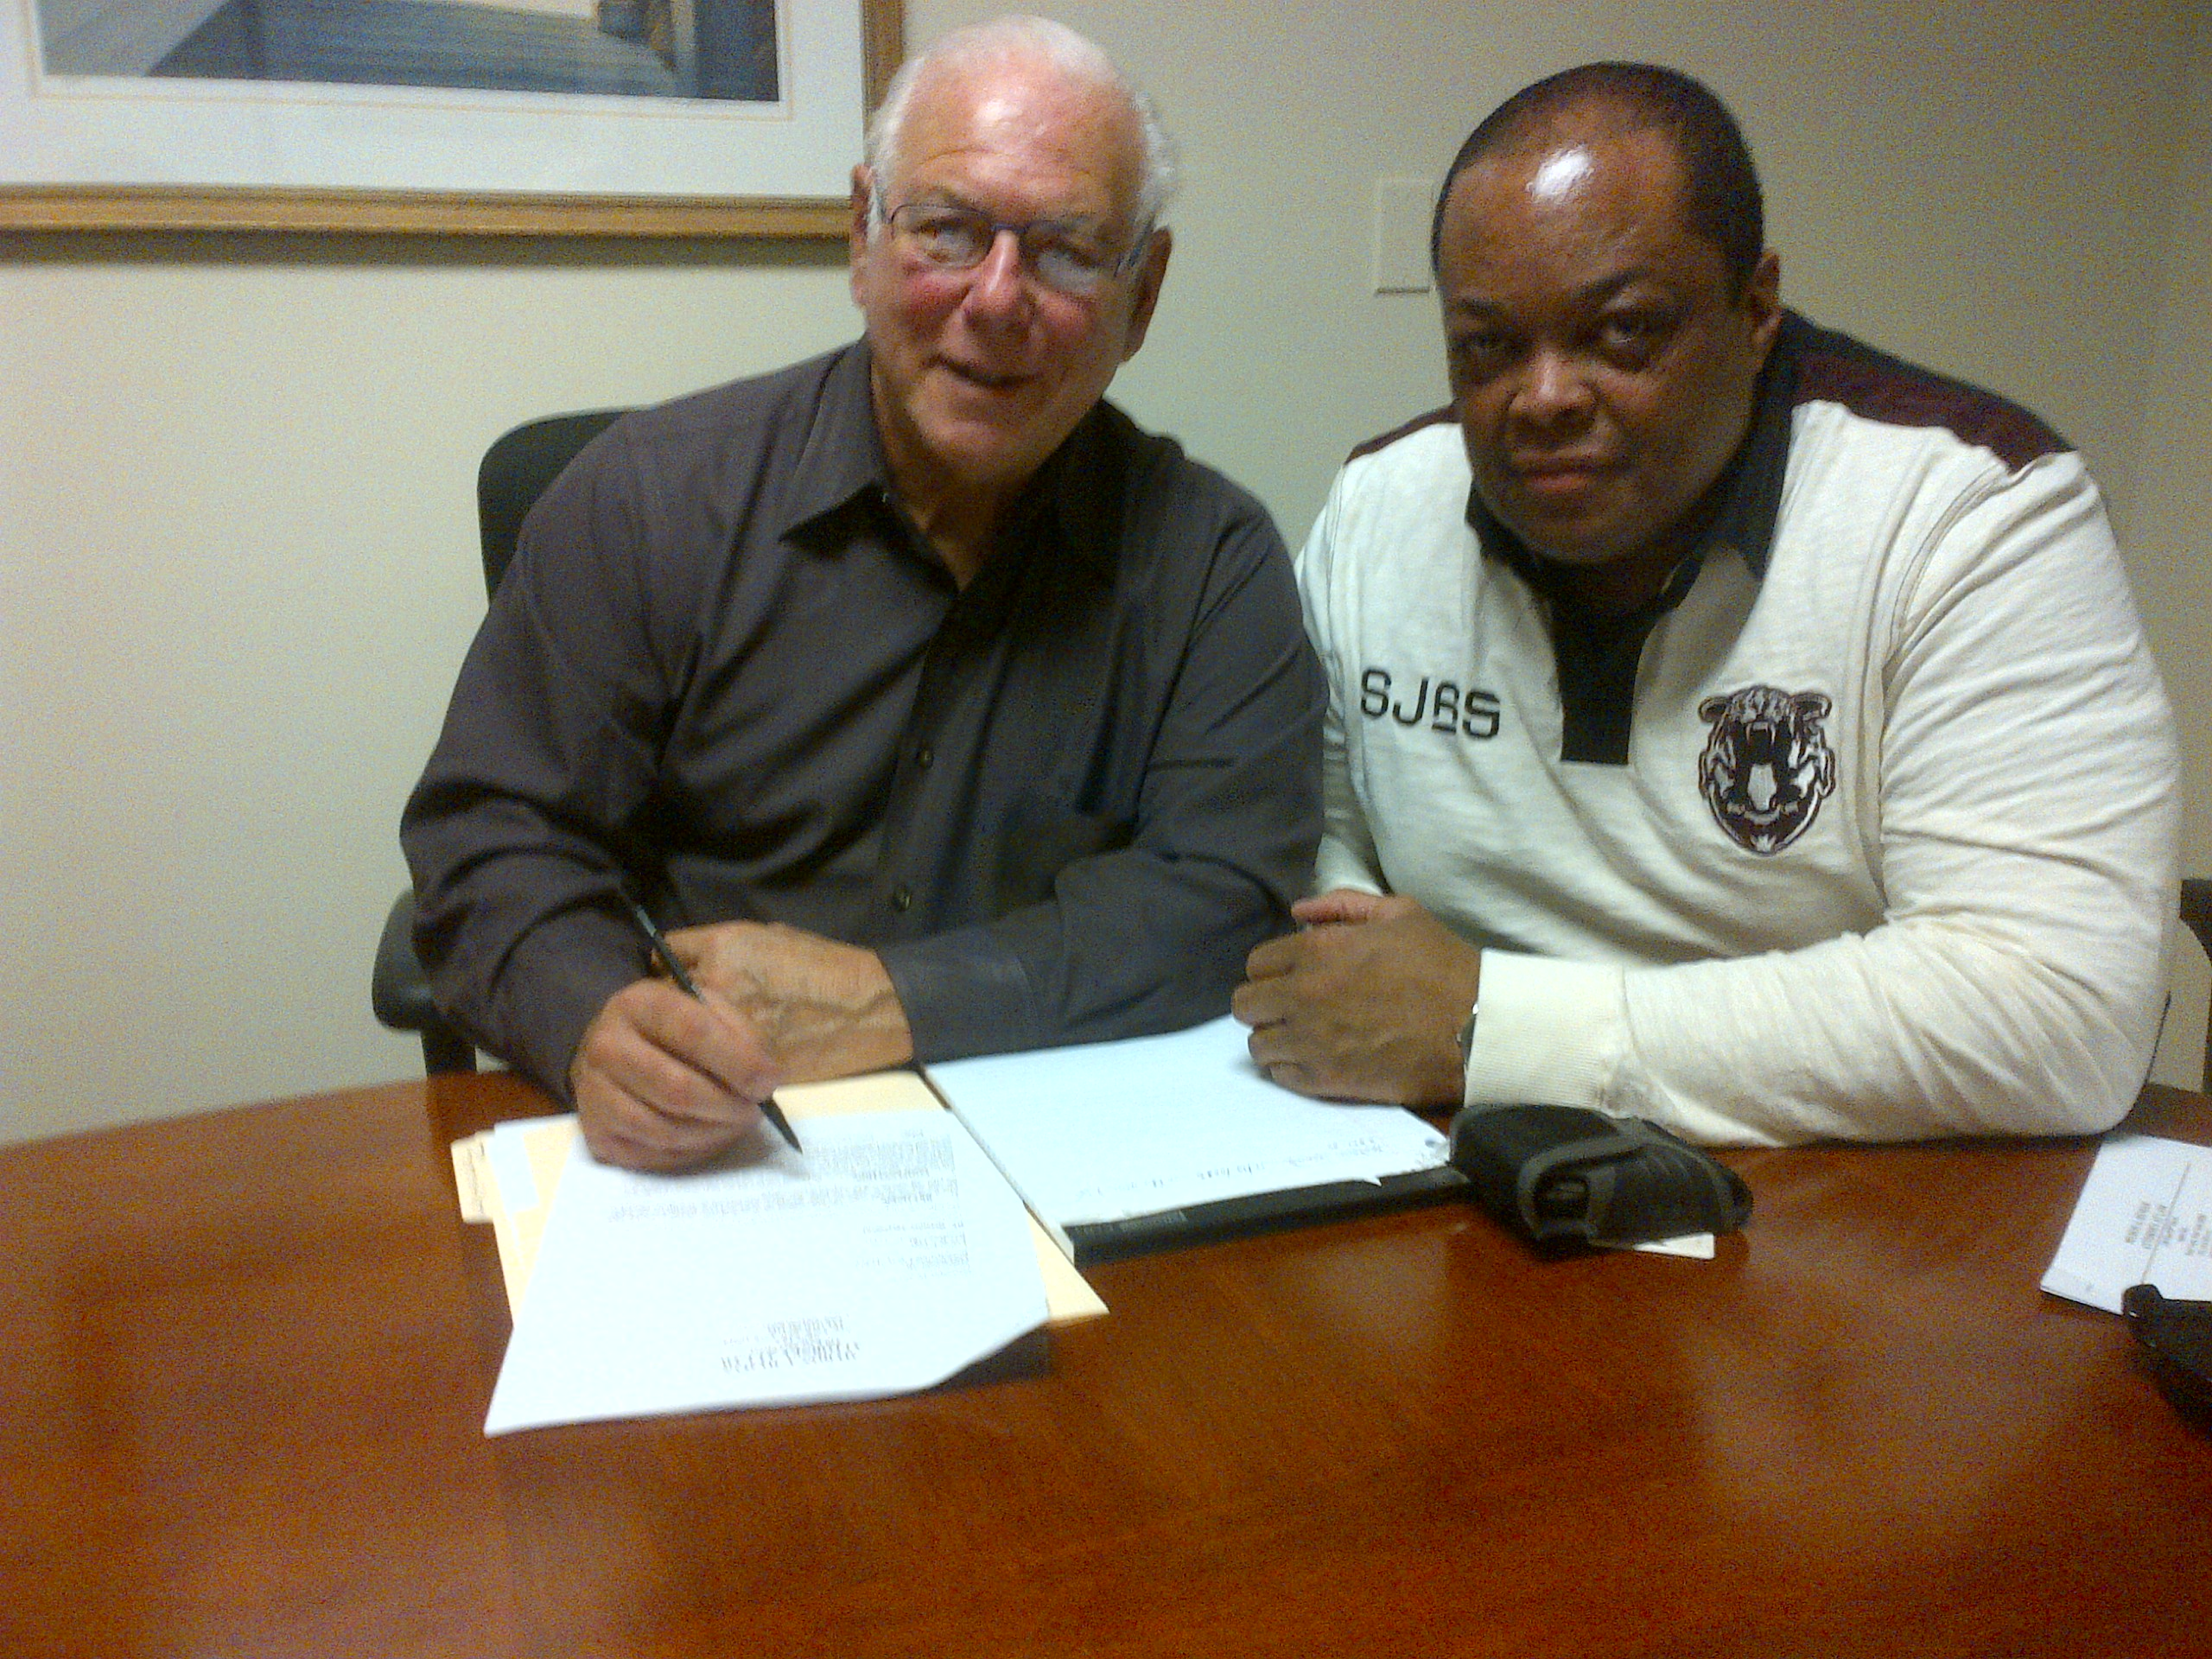 Attorney~Producer Micky Hyman with Producer Director Frazier discussing  paperwork for new Muhammad